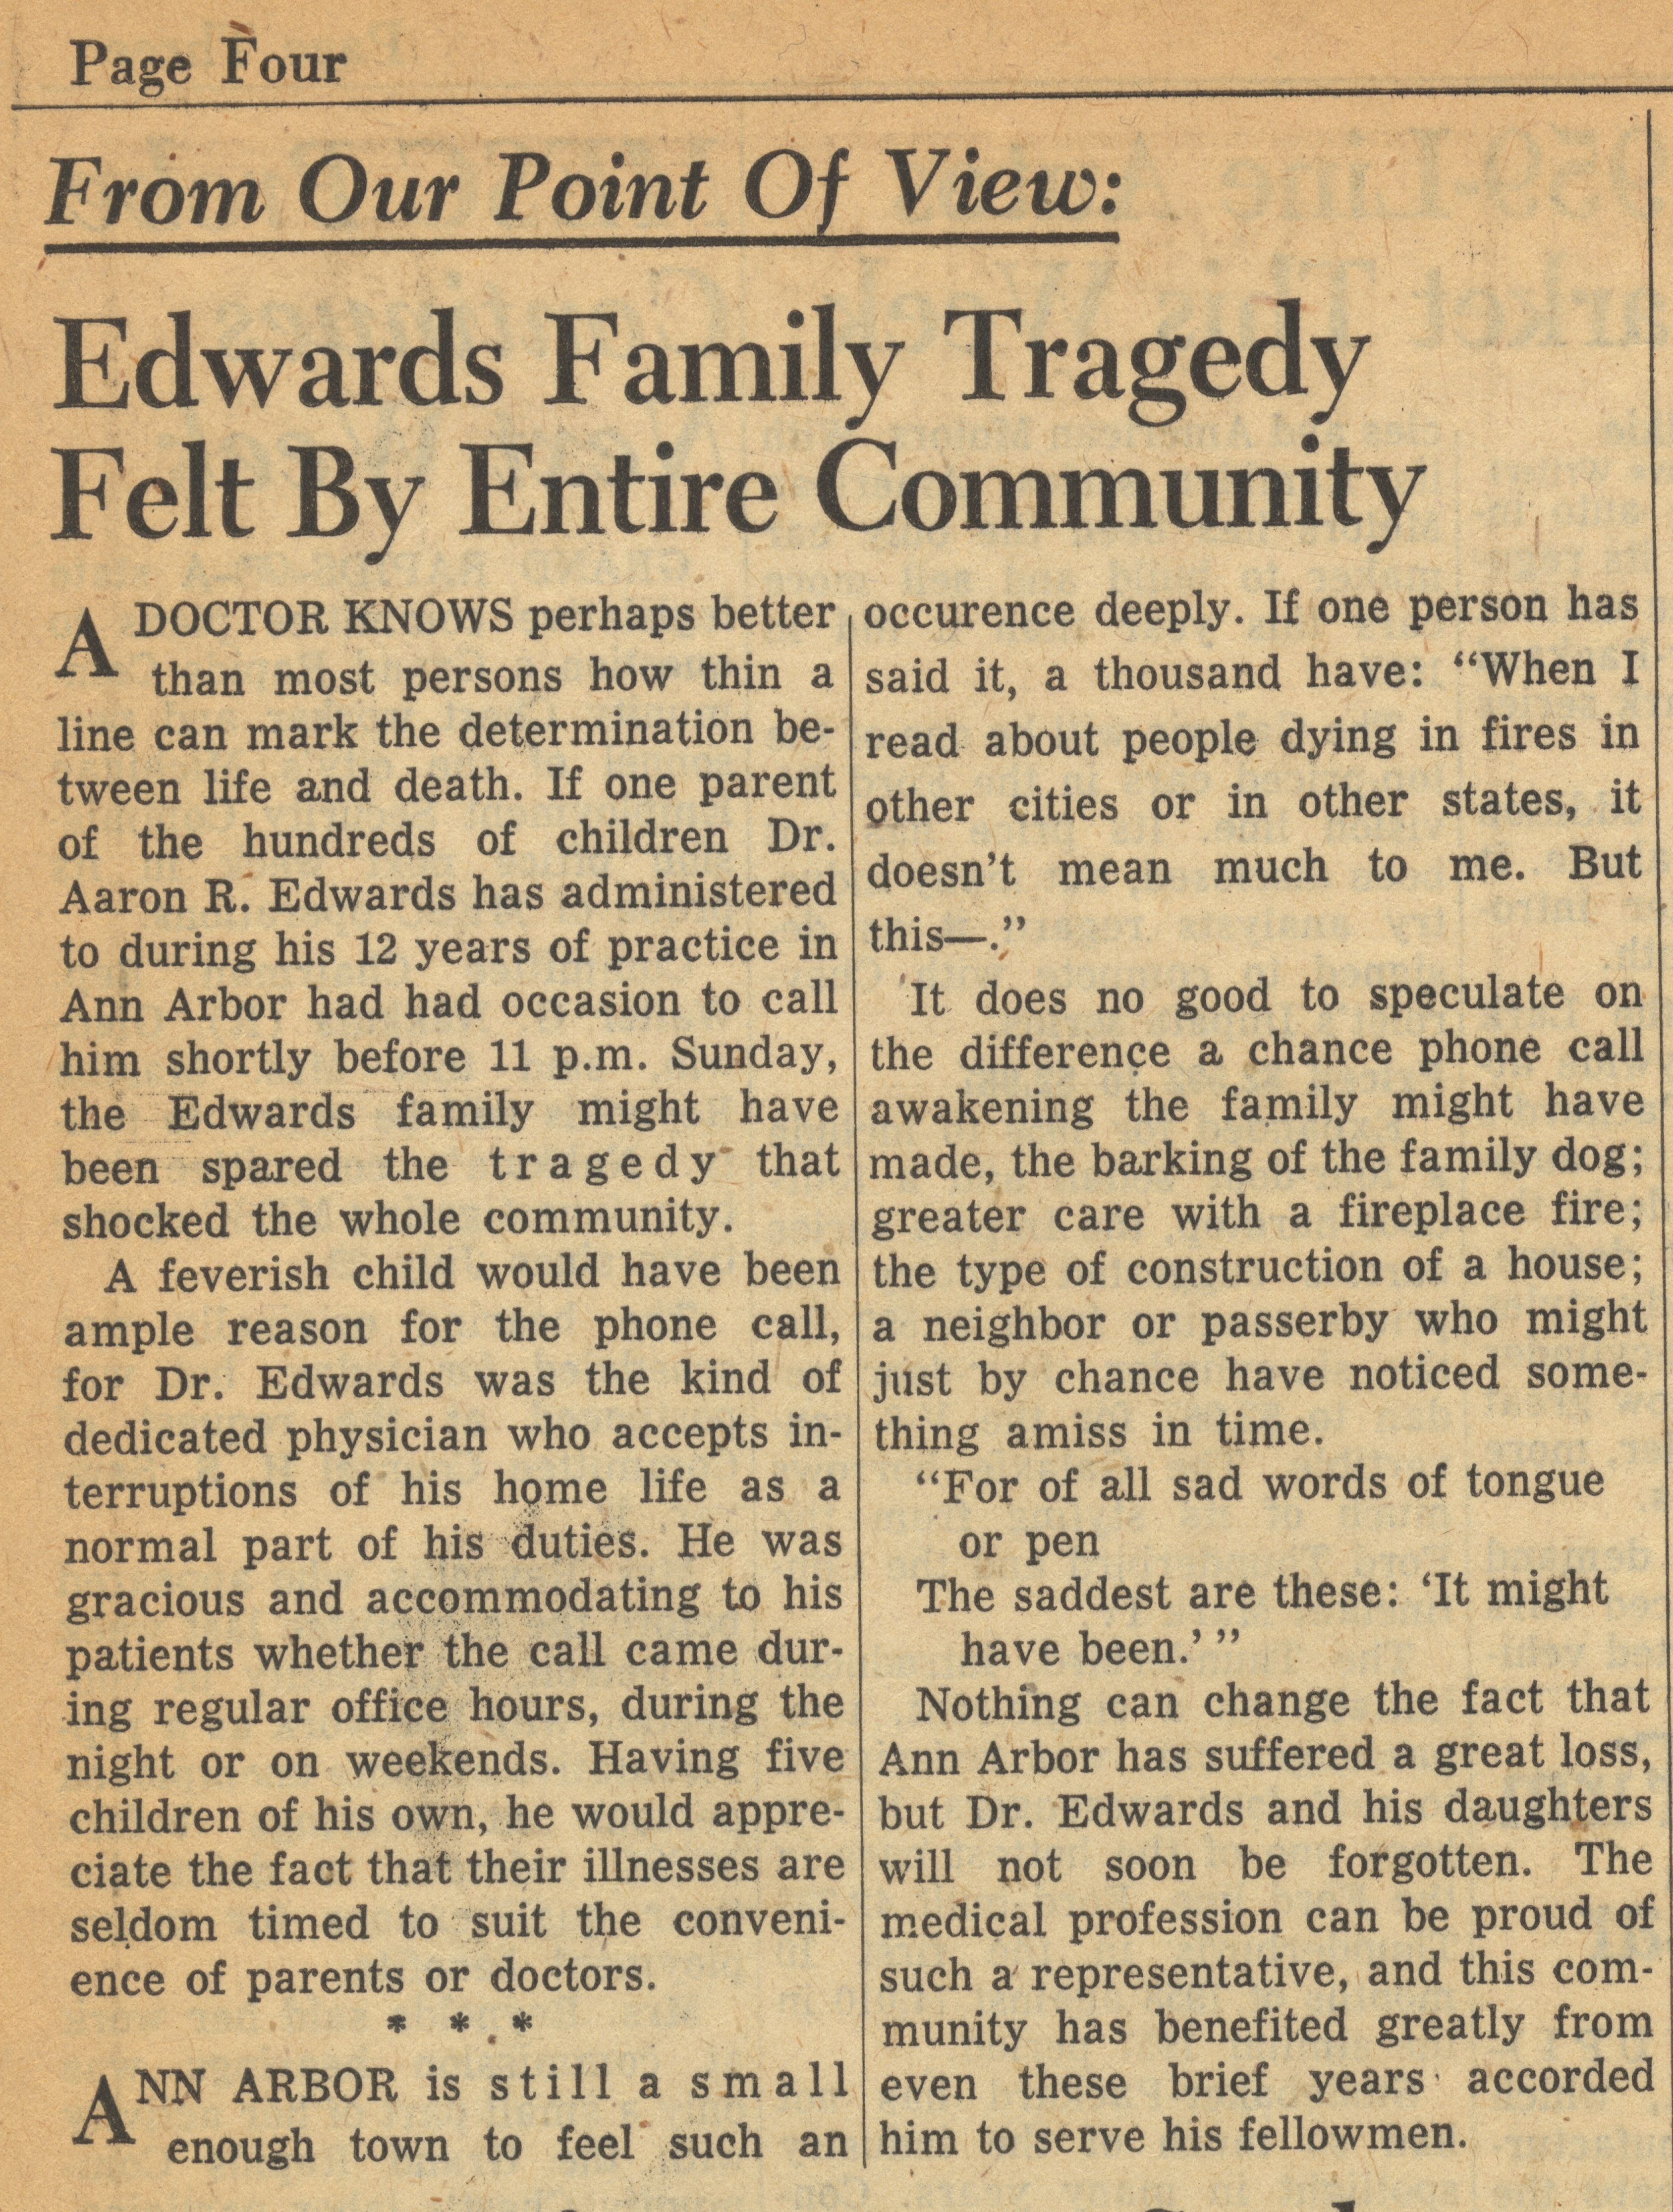 From Our Point of View: Edwards Family Tragedy Felt By Entire Community image